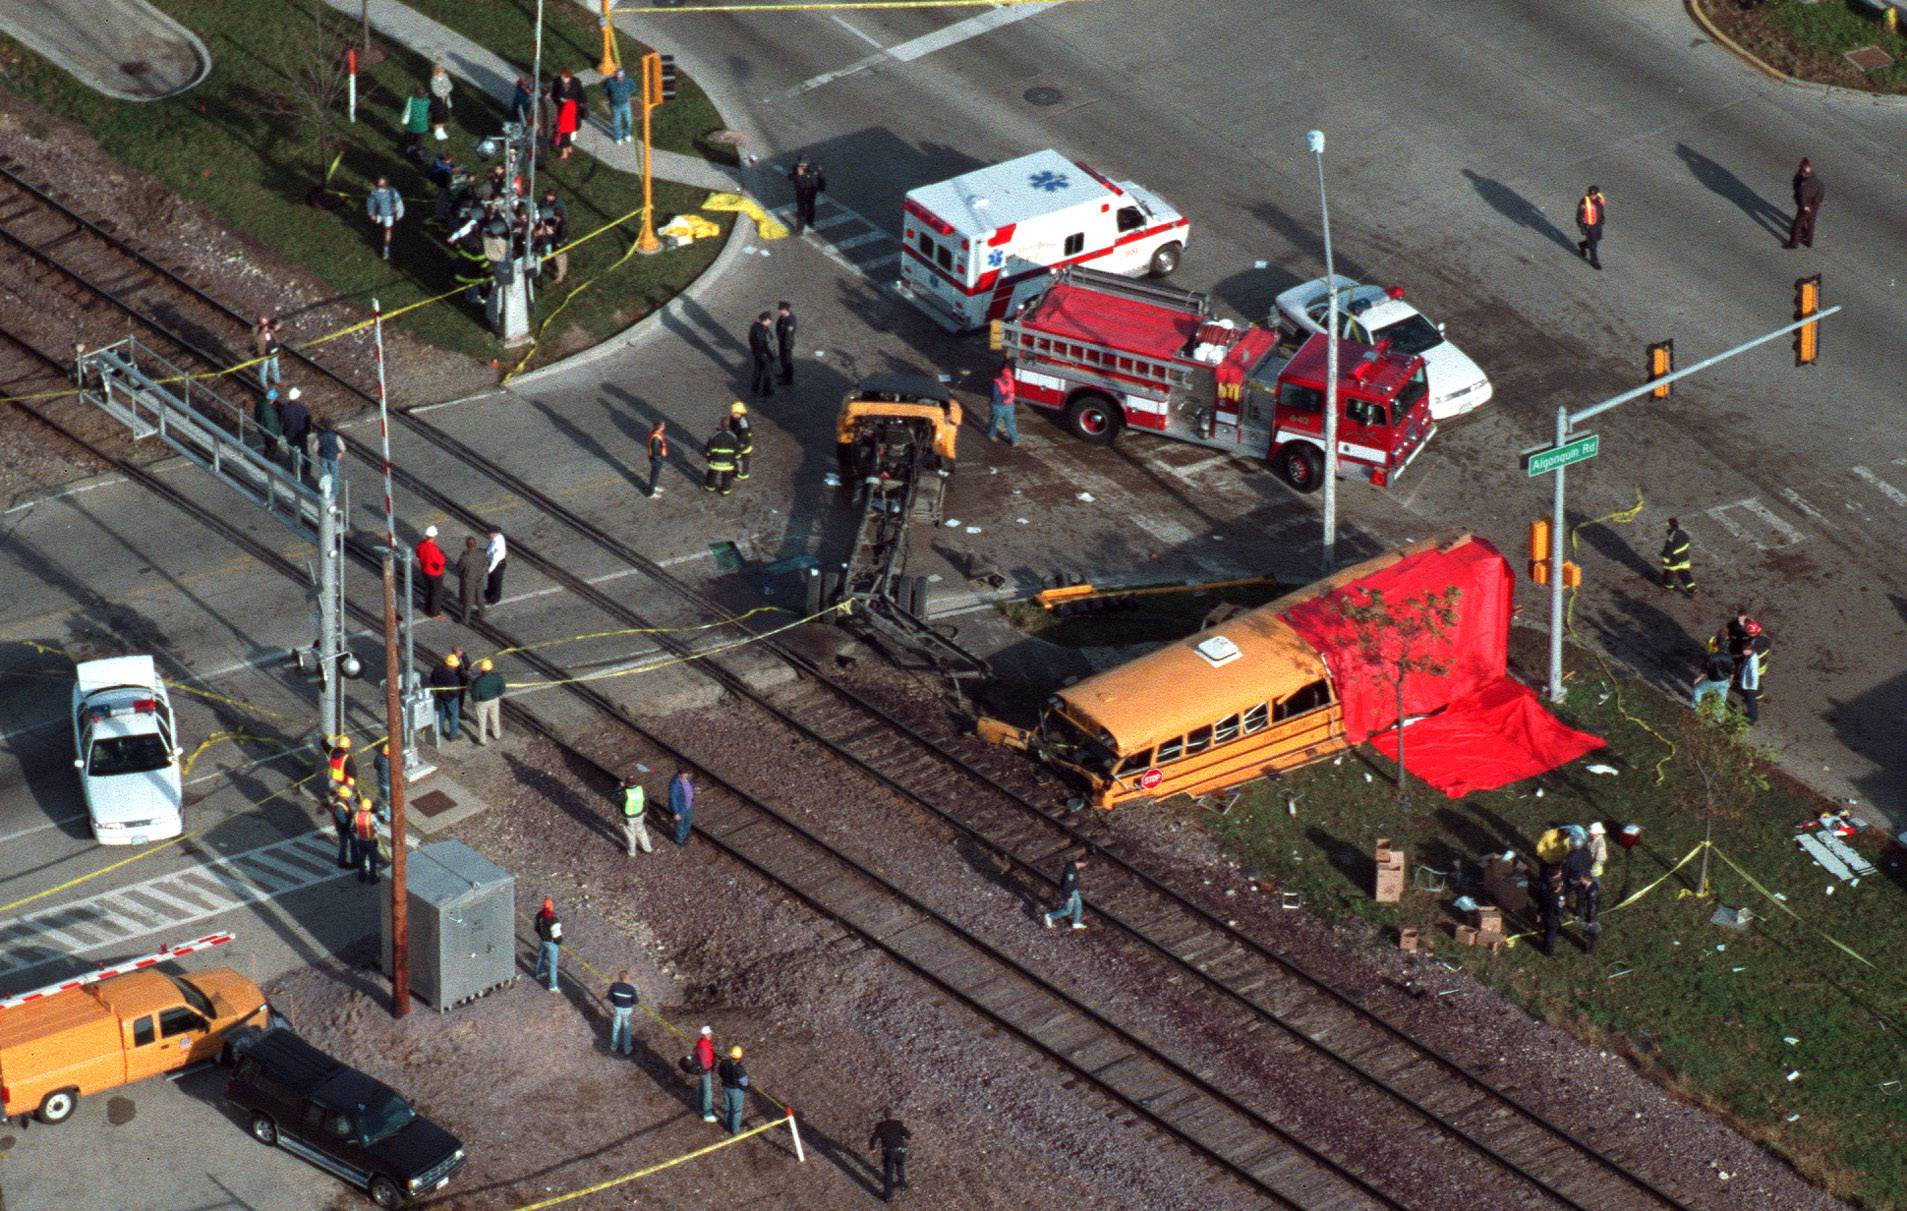 The driver of a school bus thought there was room to pull across the railroad tracks and wait at a red light on Oct. 25, 1995, in Fox River Grove. But the bus hung over the tracks and was hit by a train, killing seven students.